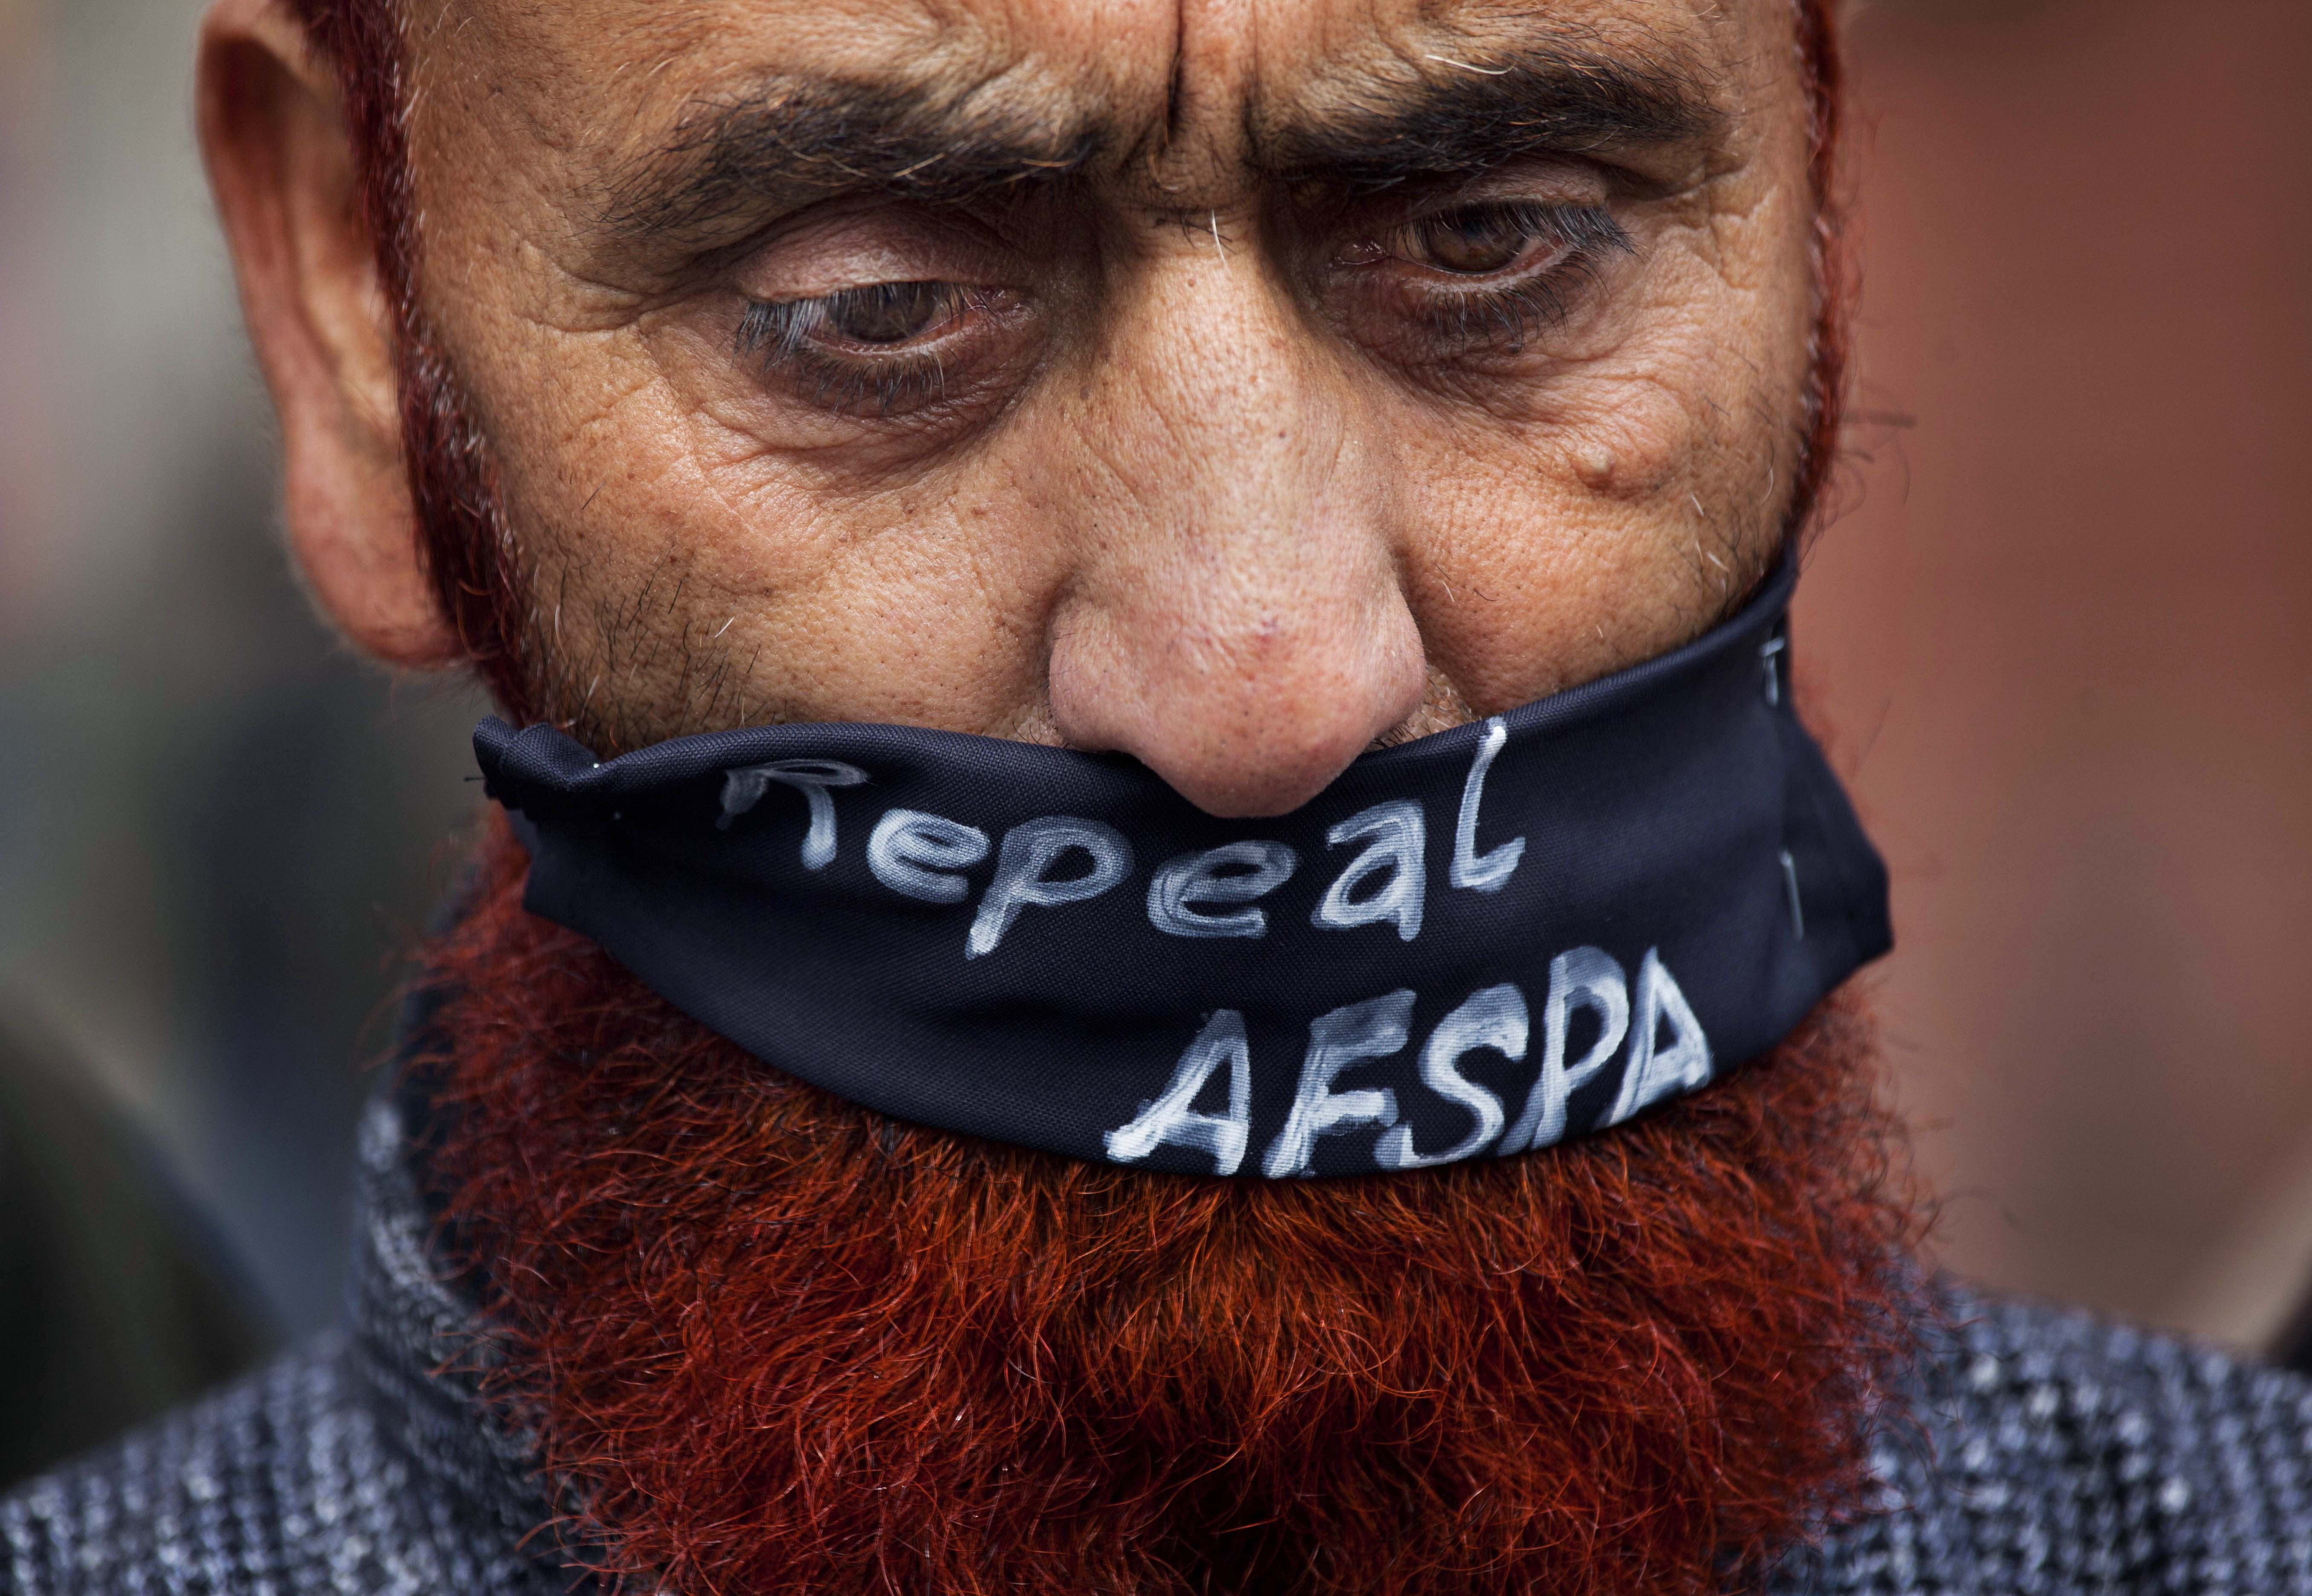 FILE - In this Saturday, Feb. 15, 2014, file photo, a relative of a missing Kashmiri wears a scarf asking for the Armed Forces Special Powers Act (AFSPA) to be repealed as he participates in a silent protest organized by Association of Parents of Disappeared People (APDP), in Srinagar, India. In a rare admission of wrongdoing, the Indian military on Friday, Sept. 18, 2020, said its soldiers in Kashmir exceeded their legal powers in the killings of three local men on it had described as Pakistani terrorists on July 18. Col. Rajesh Kalia, an Indian army spokesman, said an army investigation showed the soldiers had exceeded the powers granted to them under the AFSPA. The act gives the Indian military in Kashmir sweeping powers to search, seize and even shoot suspects on sight without fear of prosecution. (AP Photo/Dar Yasin, File)